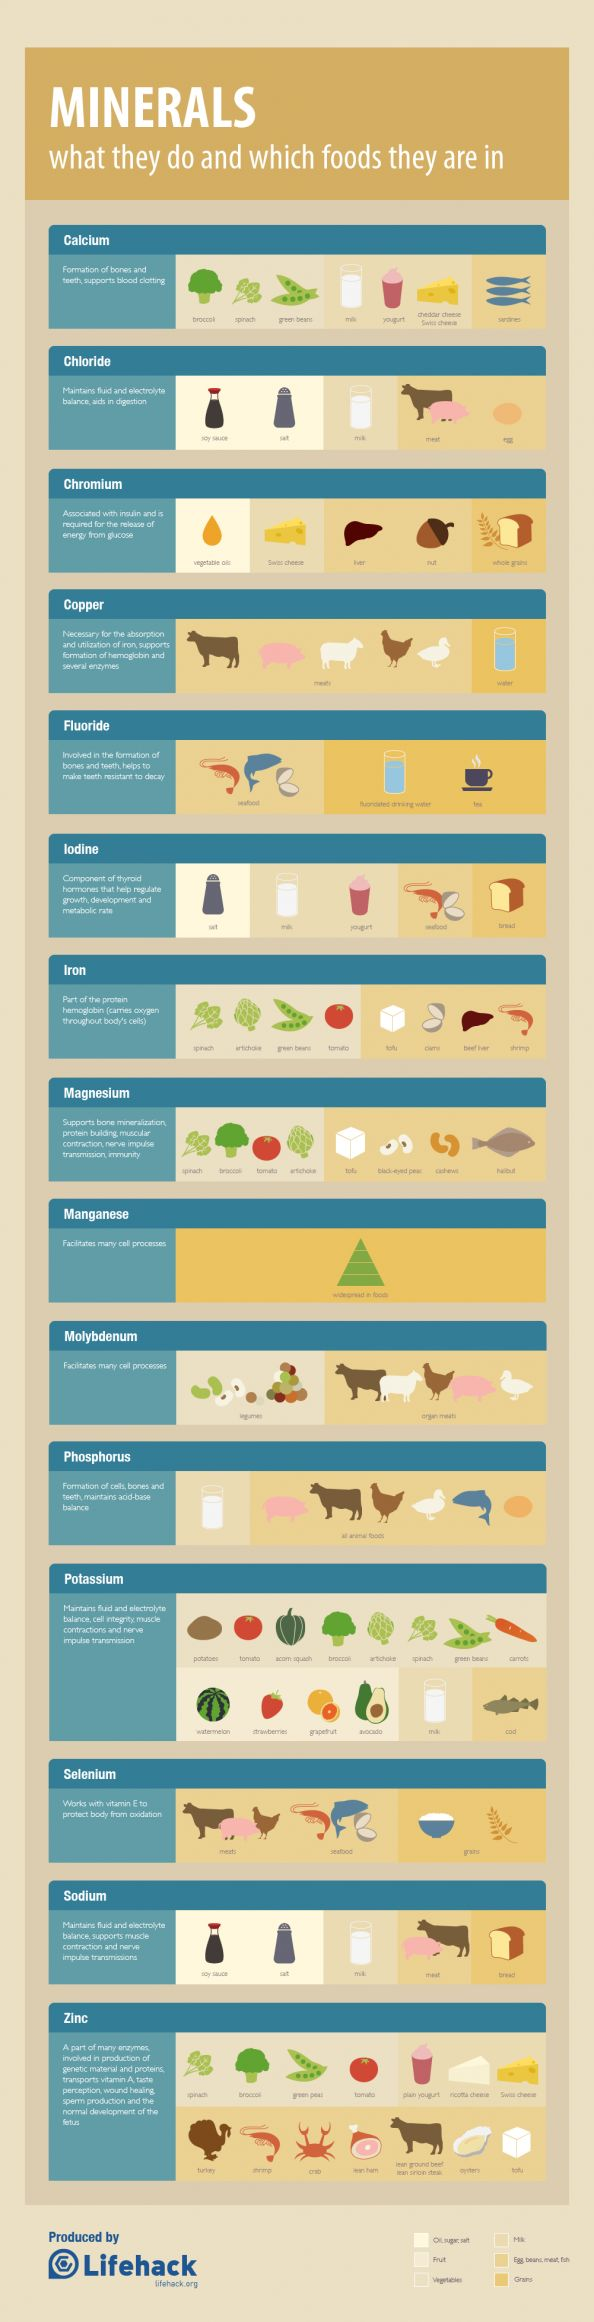 Nutrition: Minerals Cheat Sheet & Food Sources Infographic